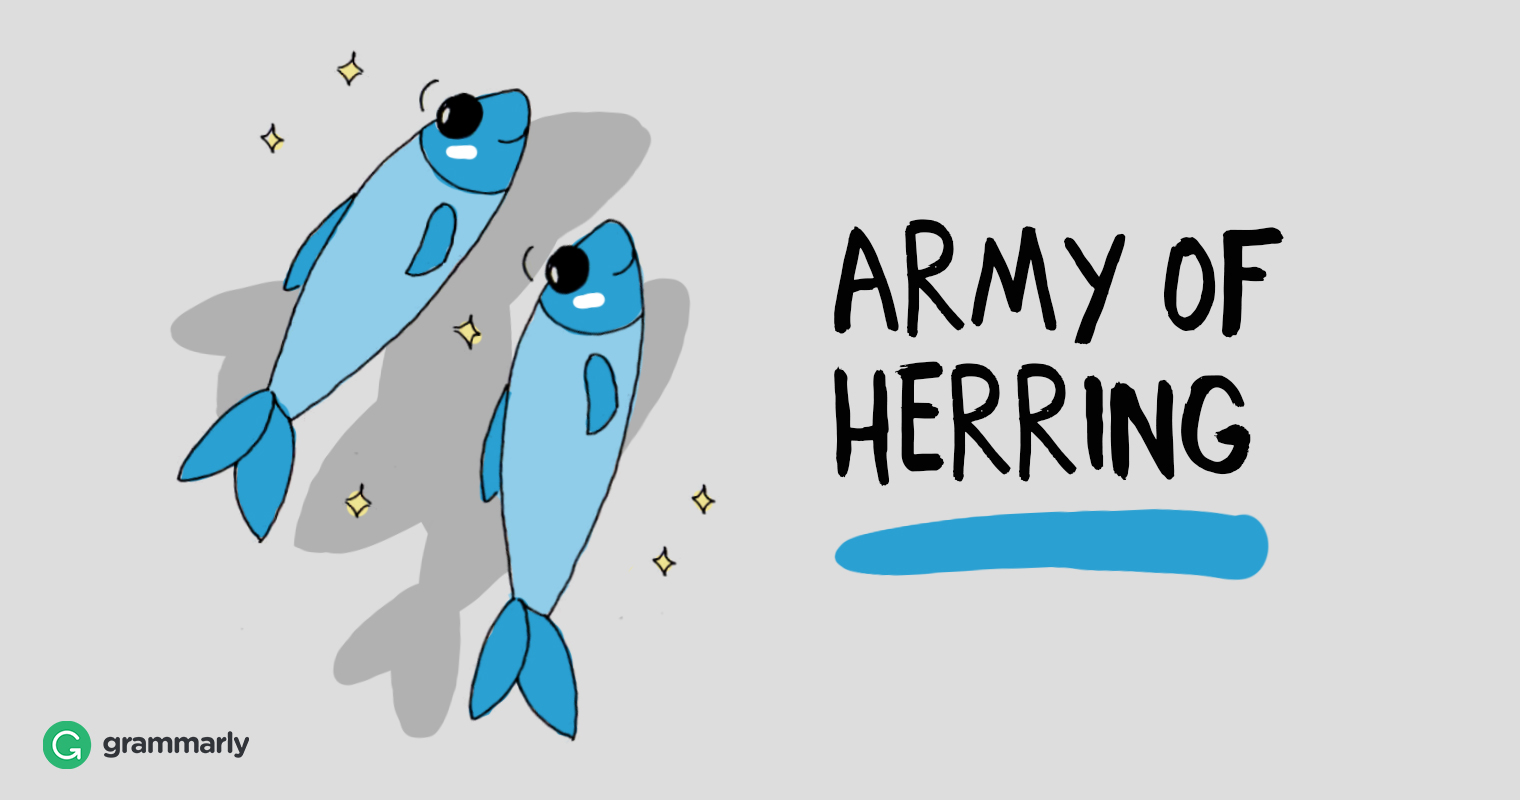 Collective of herring is an army.